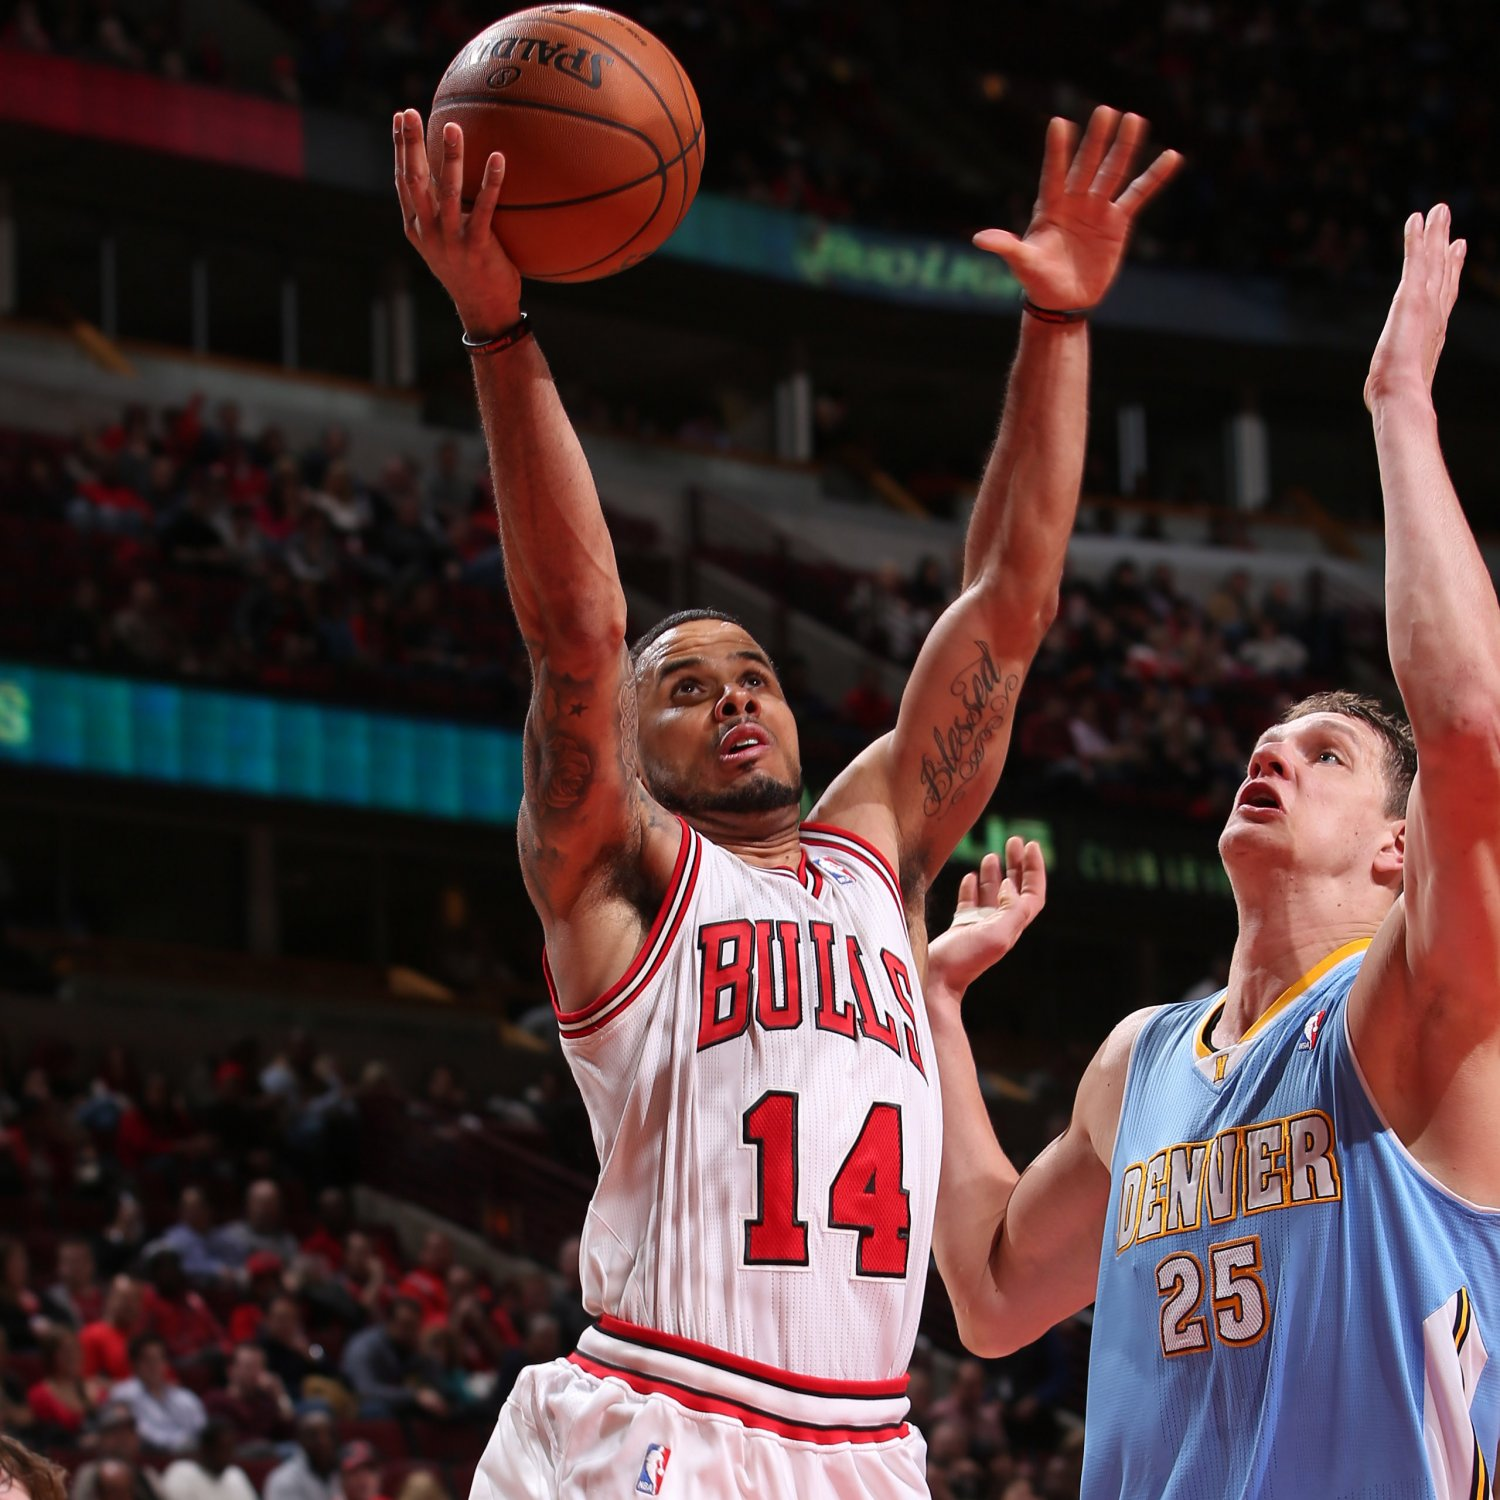 Denver Nuggets Vs. Chicago Bulls 2/21/14: Video Highlights